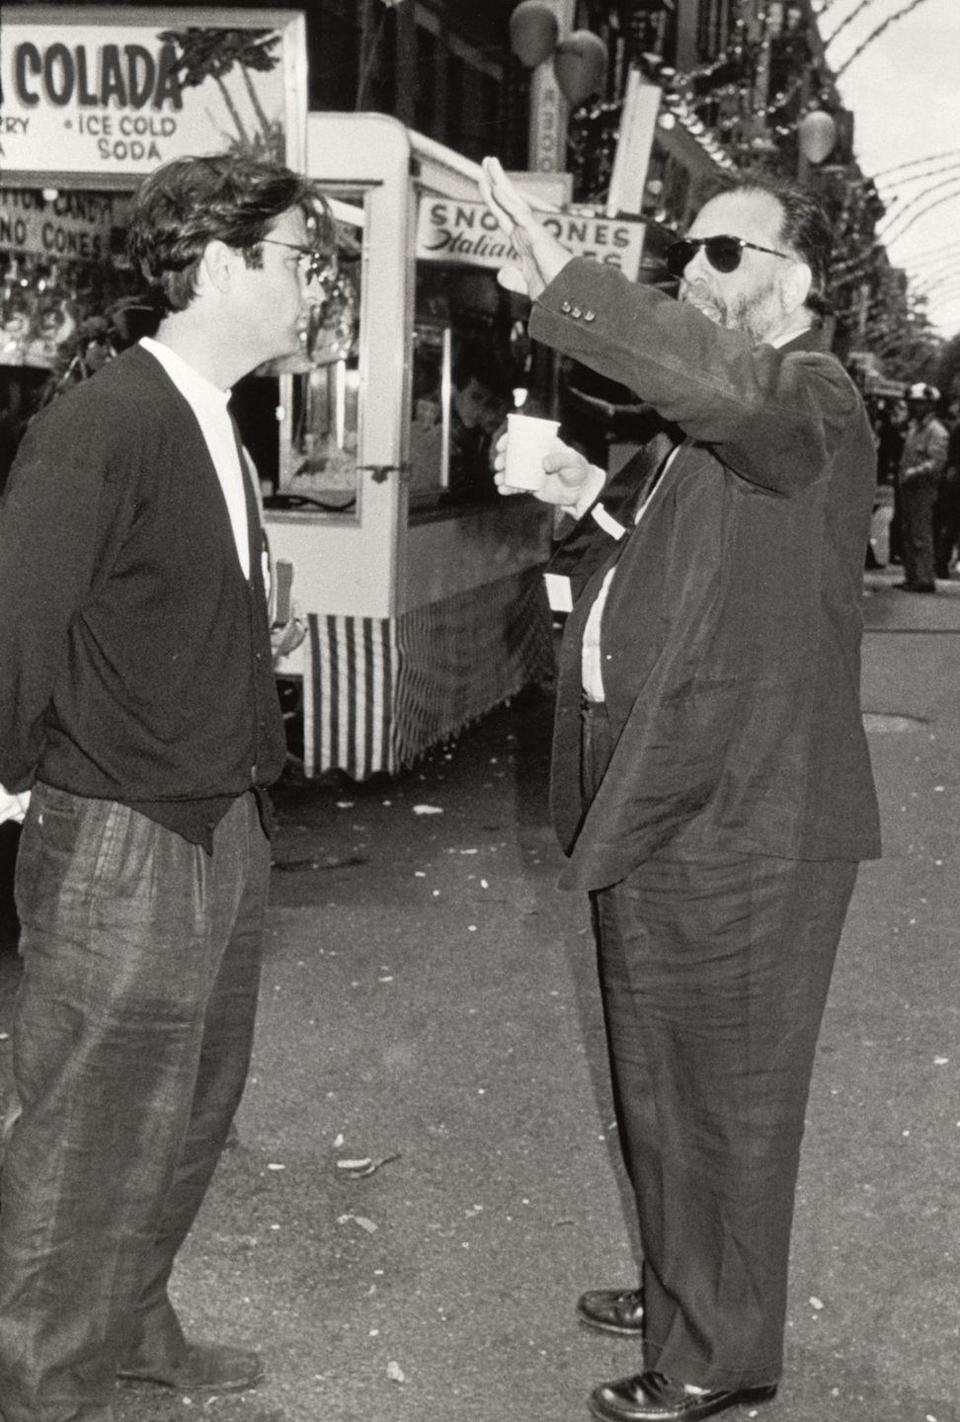 <p>Actor Andy Garcia and director Francis Ford Coppola are seen in Little Italy, New York City during the filming of the third <em>Godfather </em>movie. </p>